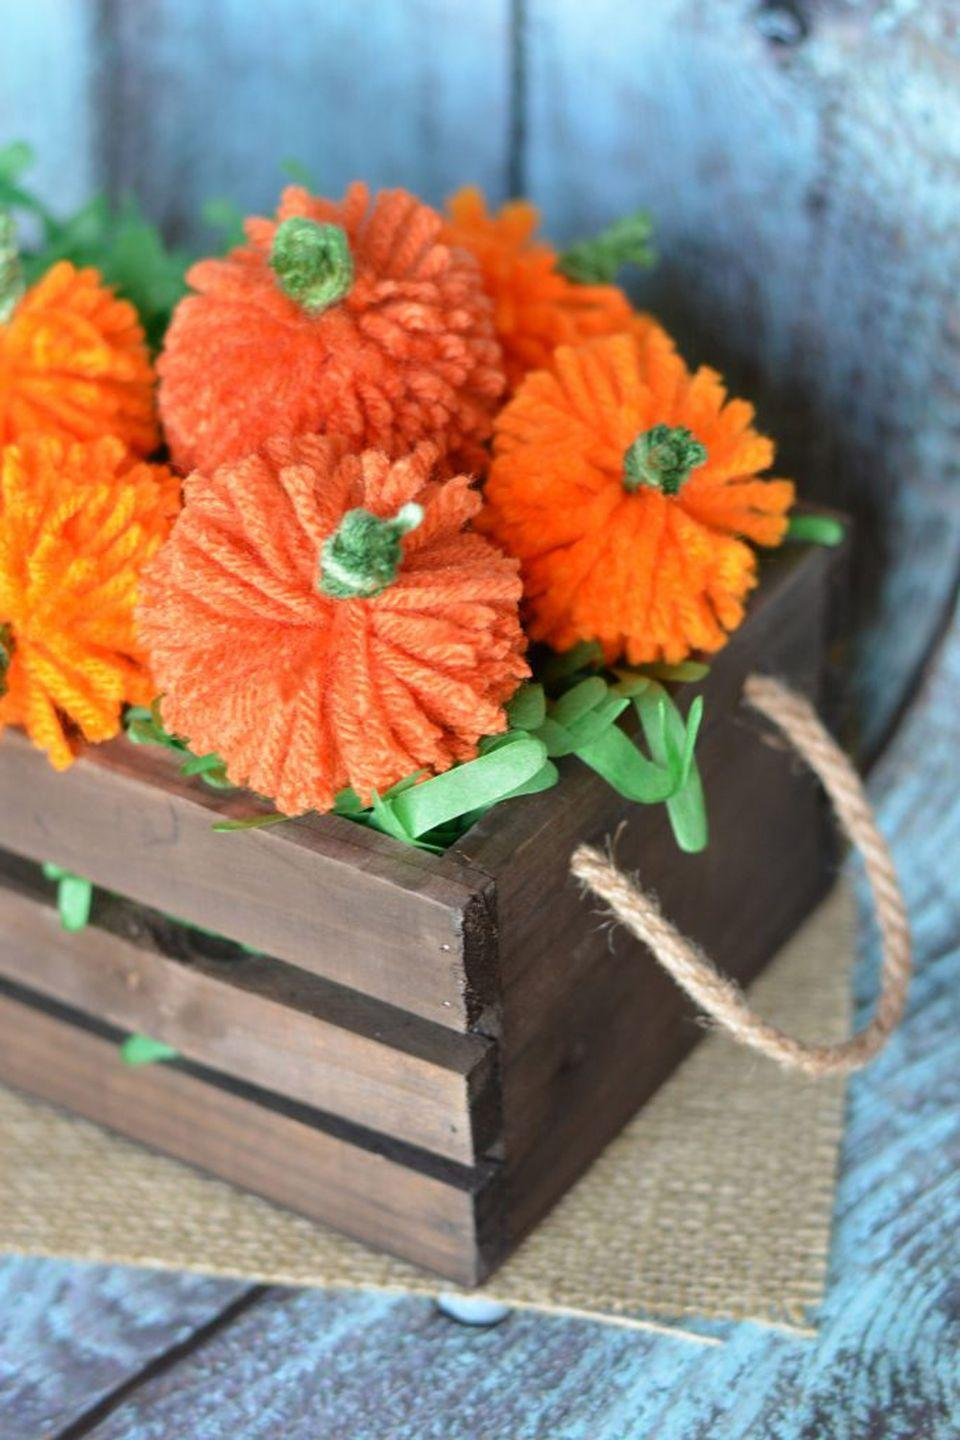 """<p>String these no-sew yarn pumpkins together for a festive fall garland.</p><p><strong>Get the tutorial at <a href=""""https://www.notquitesusie.com/2016/09/easy-diy-yarn-pumpkins-no-sew-pumpkin-garland.html"""" rel=""""nofollow noopener"""" target=""""_blank"""" data-ylk=""""slk:Not Quite Susie"""" class=""""link rapid-noclick-resp"""">Not Quite Susie</a>.</strong> </p>"""